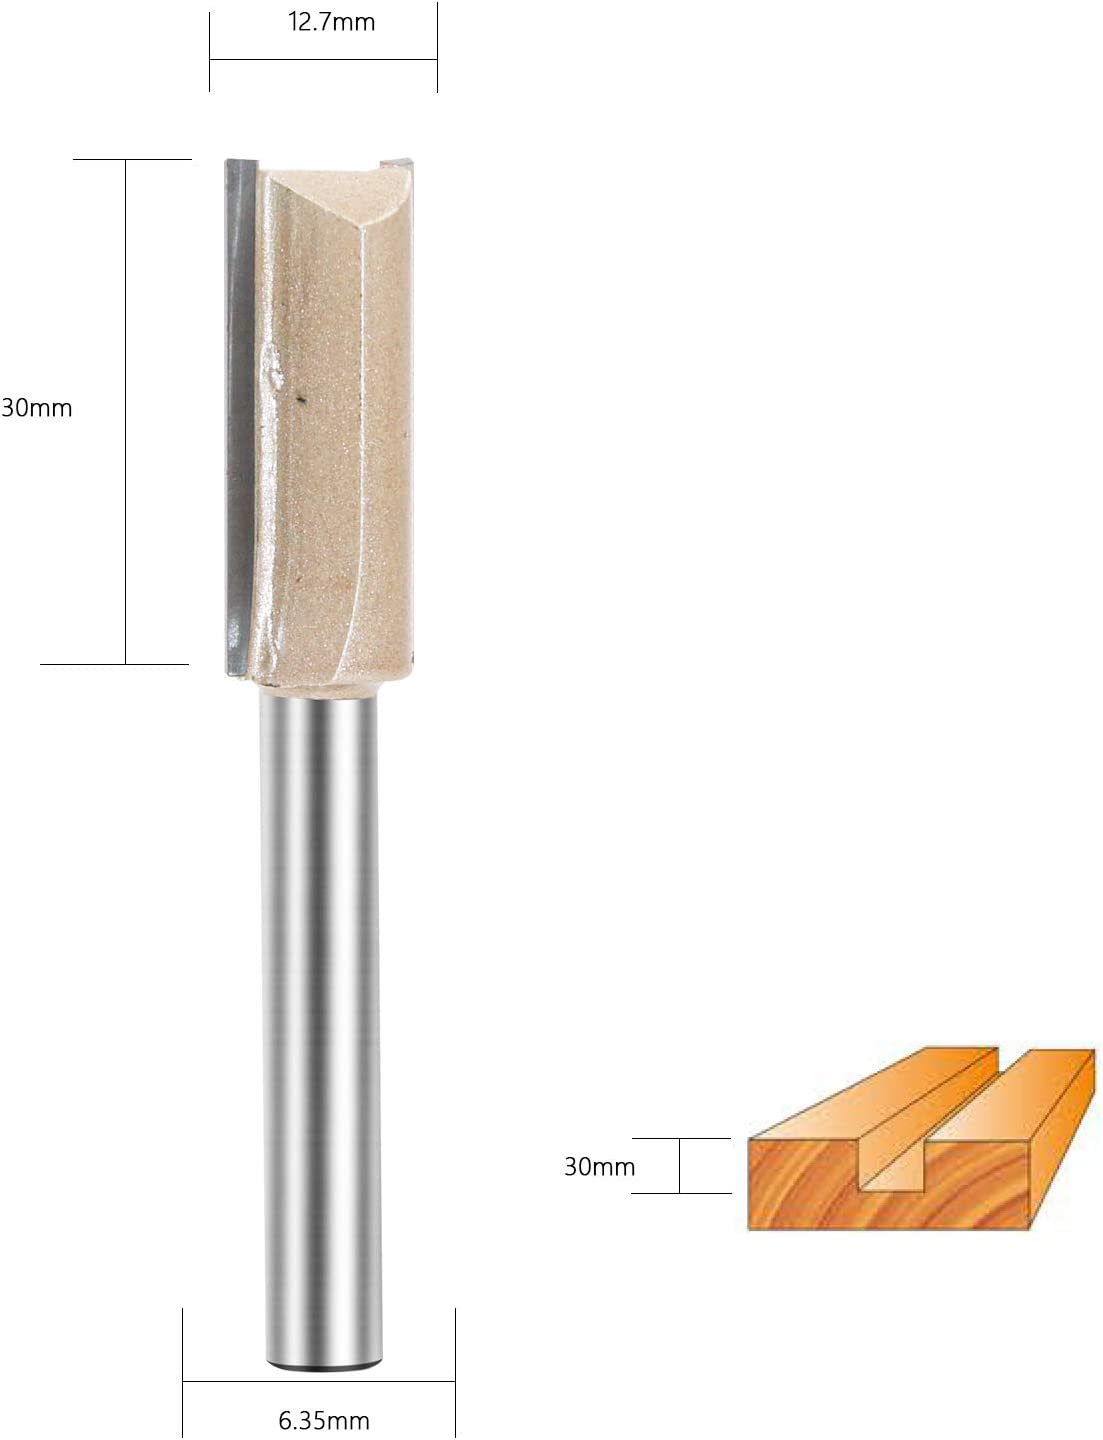 Straight Router Bit Double Flute Plunge Router Bit Carbide Tipped Woodworking Tool 1//4 Shank Cutting Dia 3//4 inch